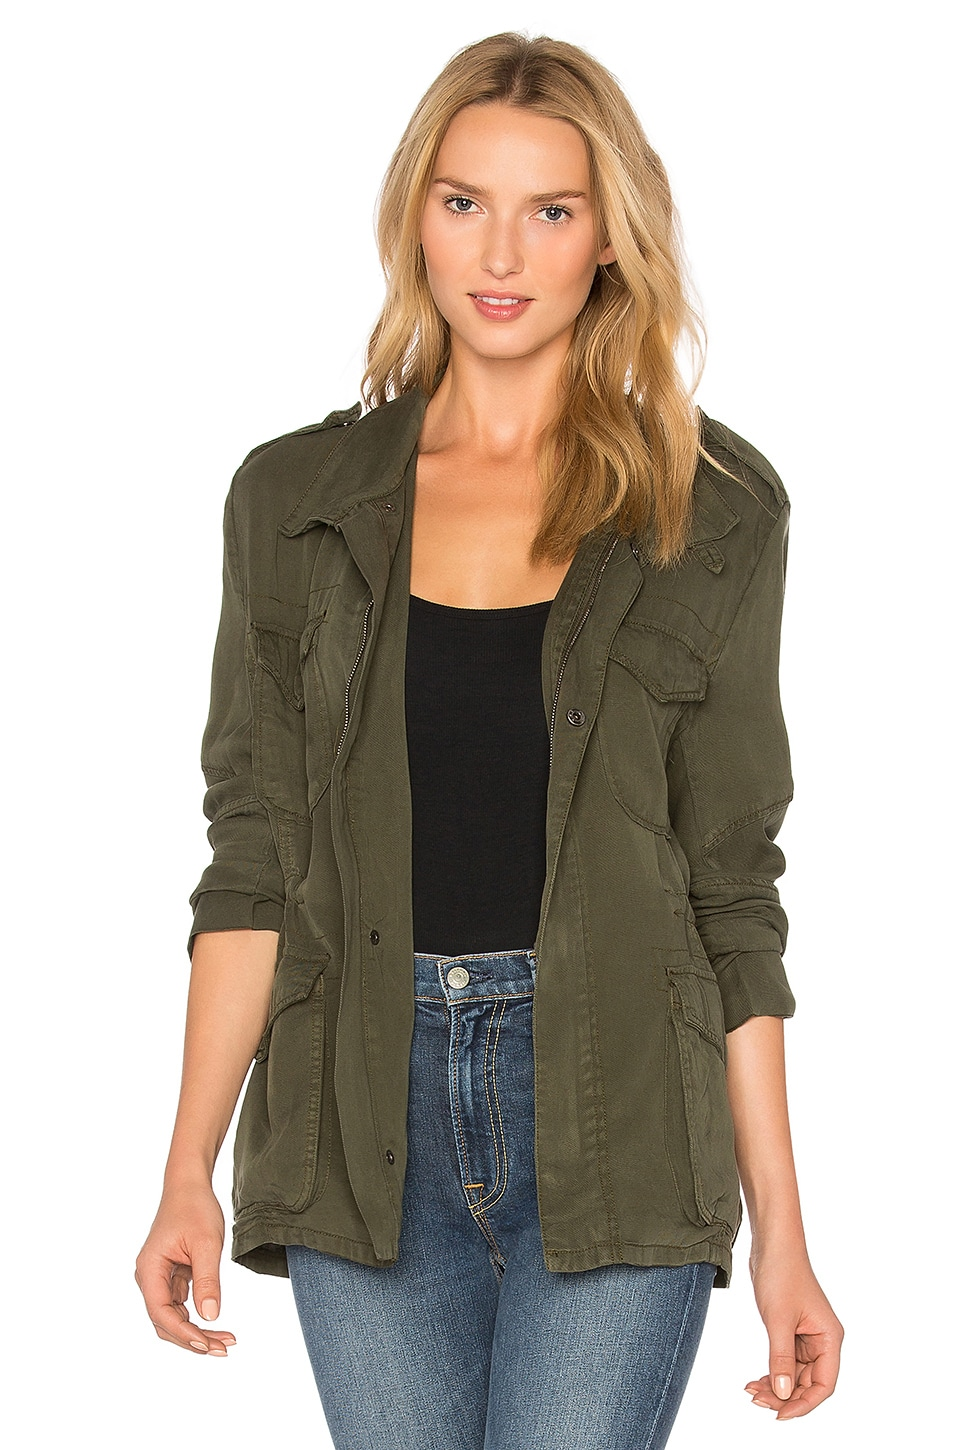 Etienne Marcel Military Jacket in Military